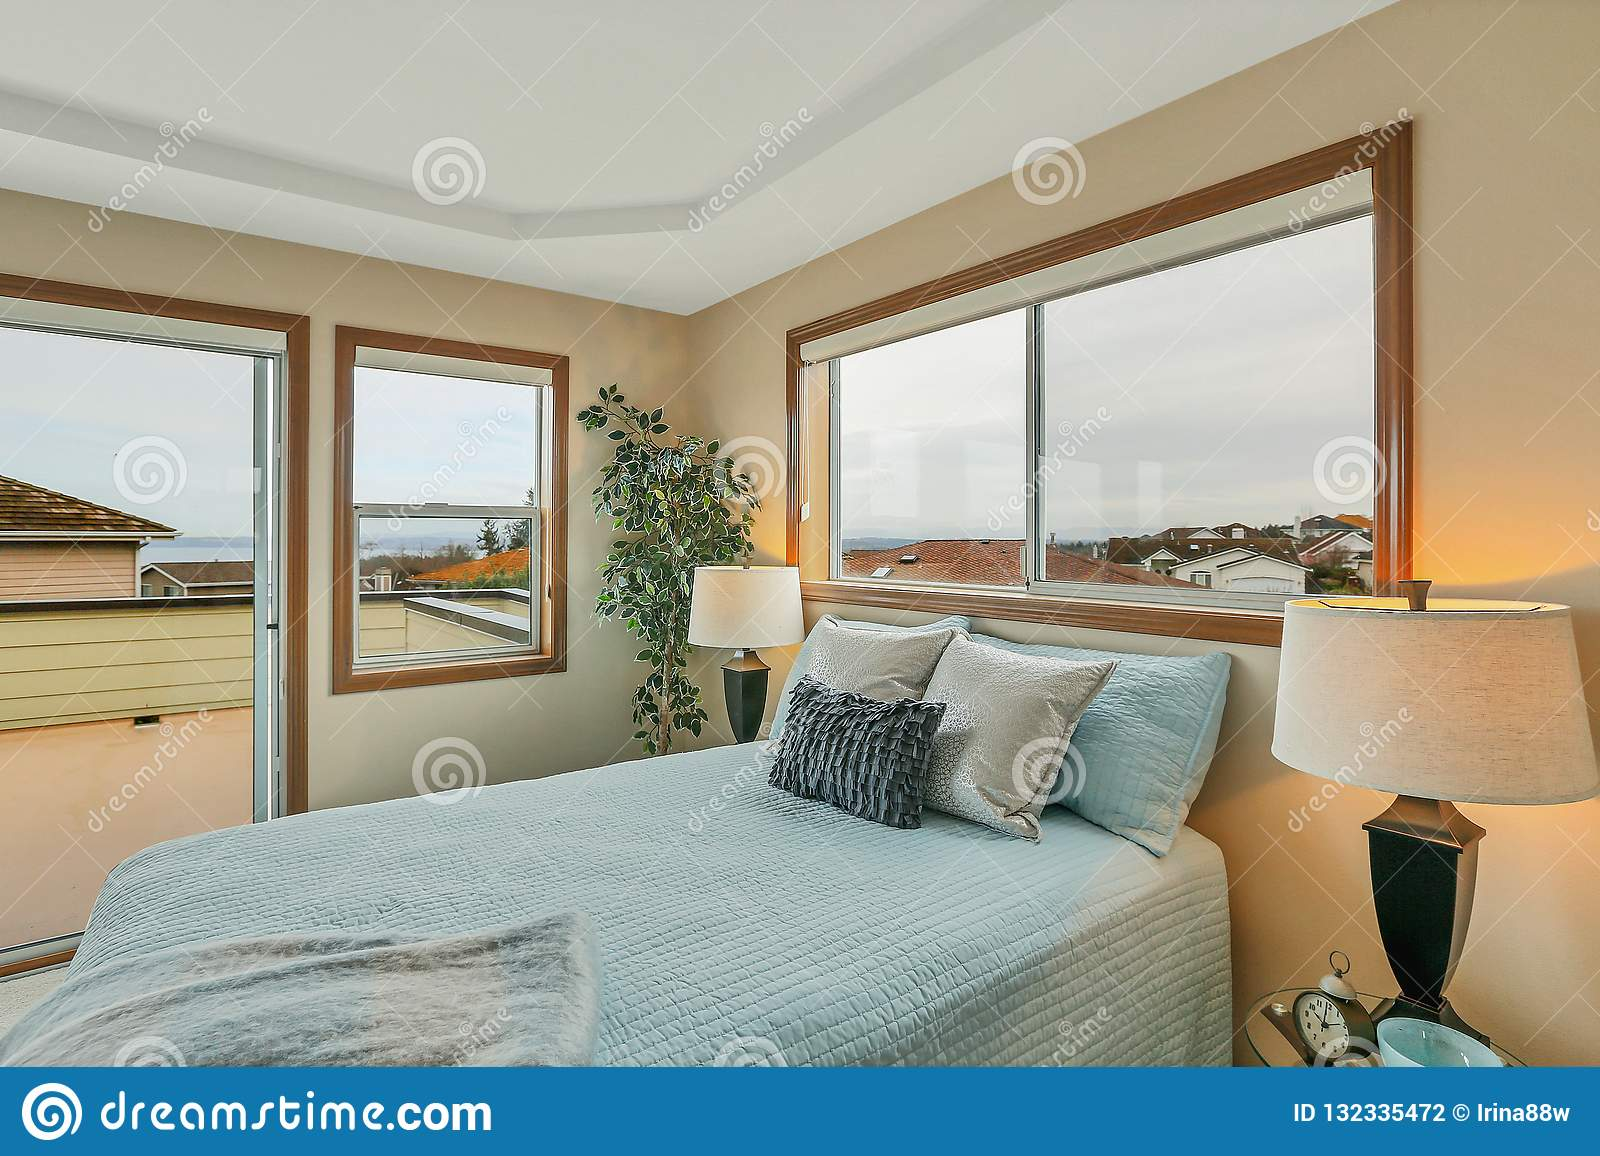 Large Beige Master Bedroom With Blue Bedding Stock Photo Image Of Comfortable Clean 132335472